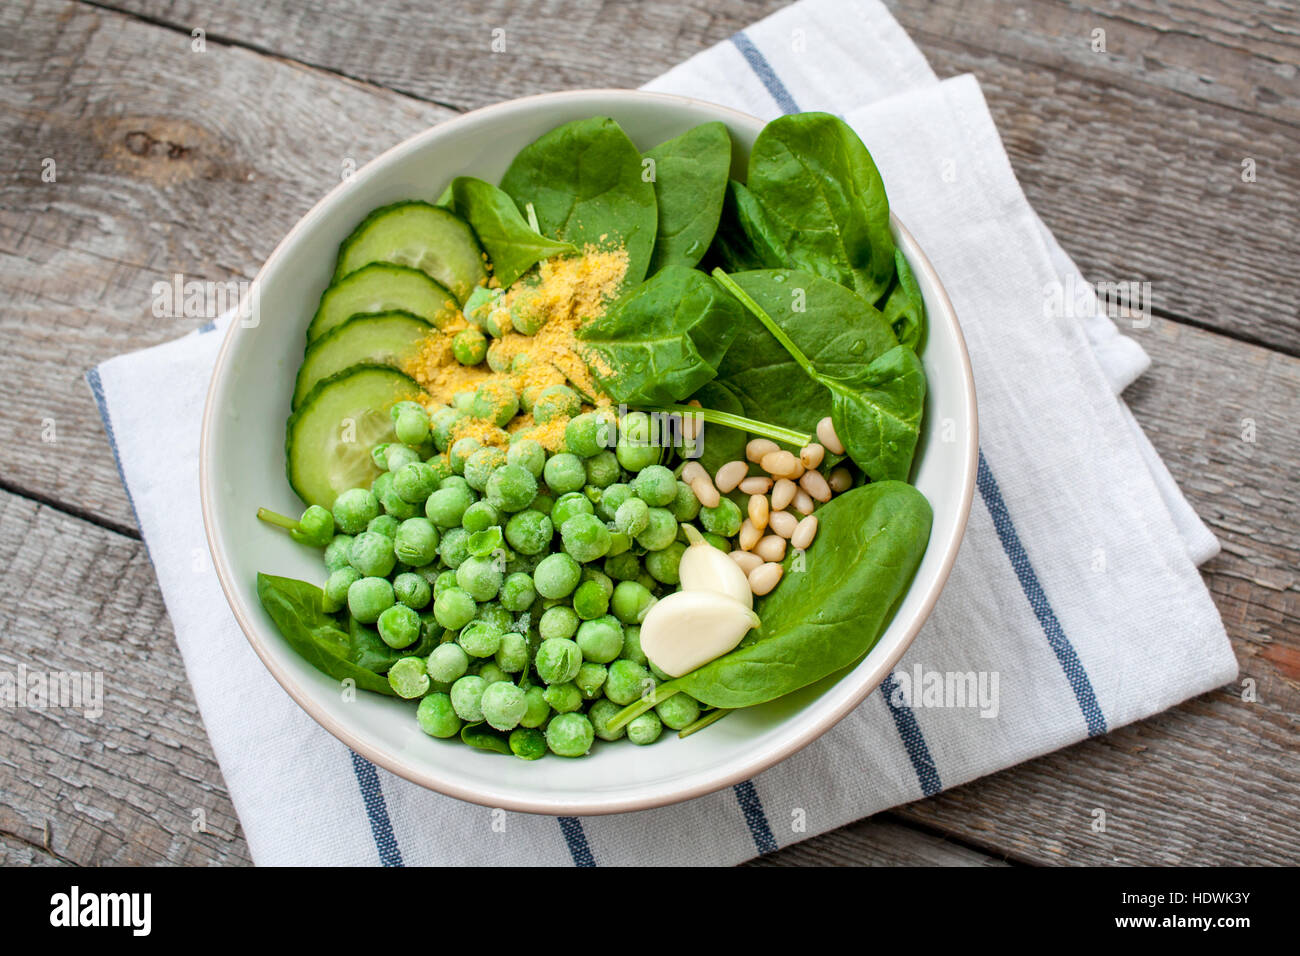 Ingredients for Green peas spinach basil pesto in a white bowl on a wooden background. Love for a healthy raw food - Stock Image